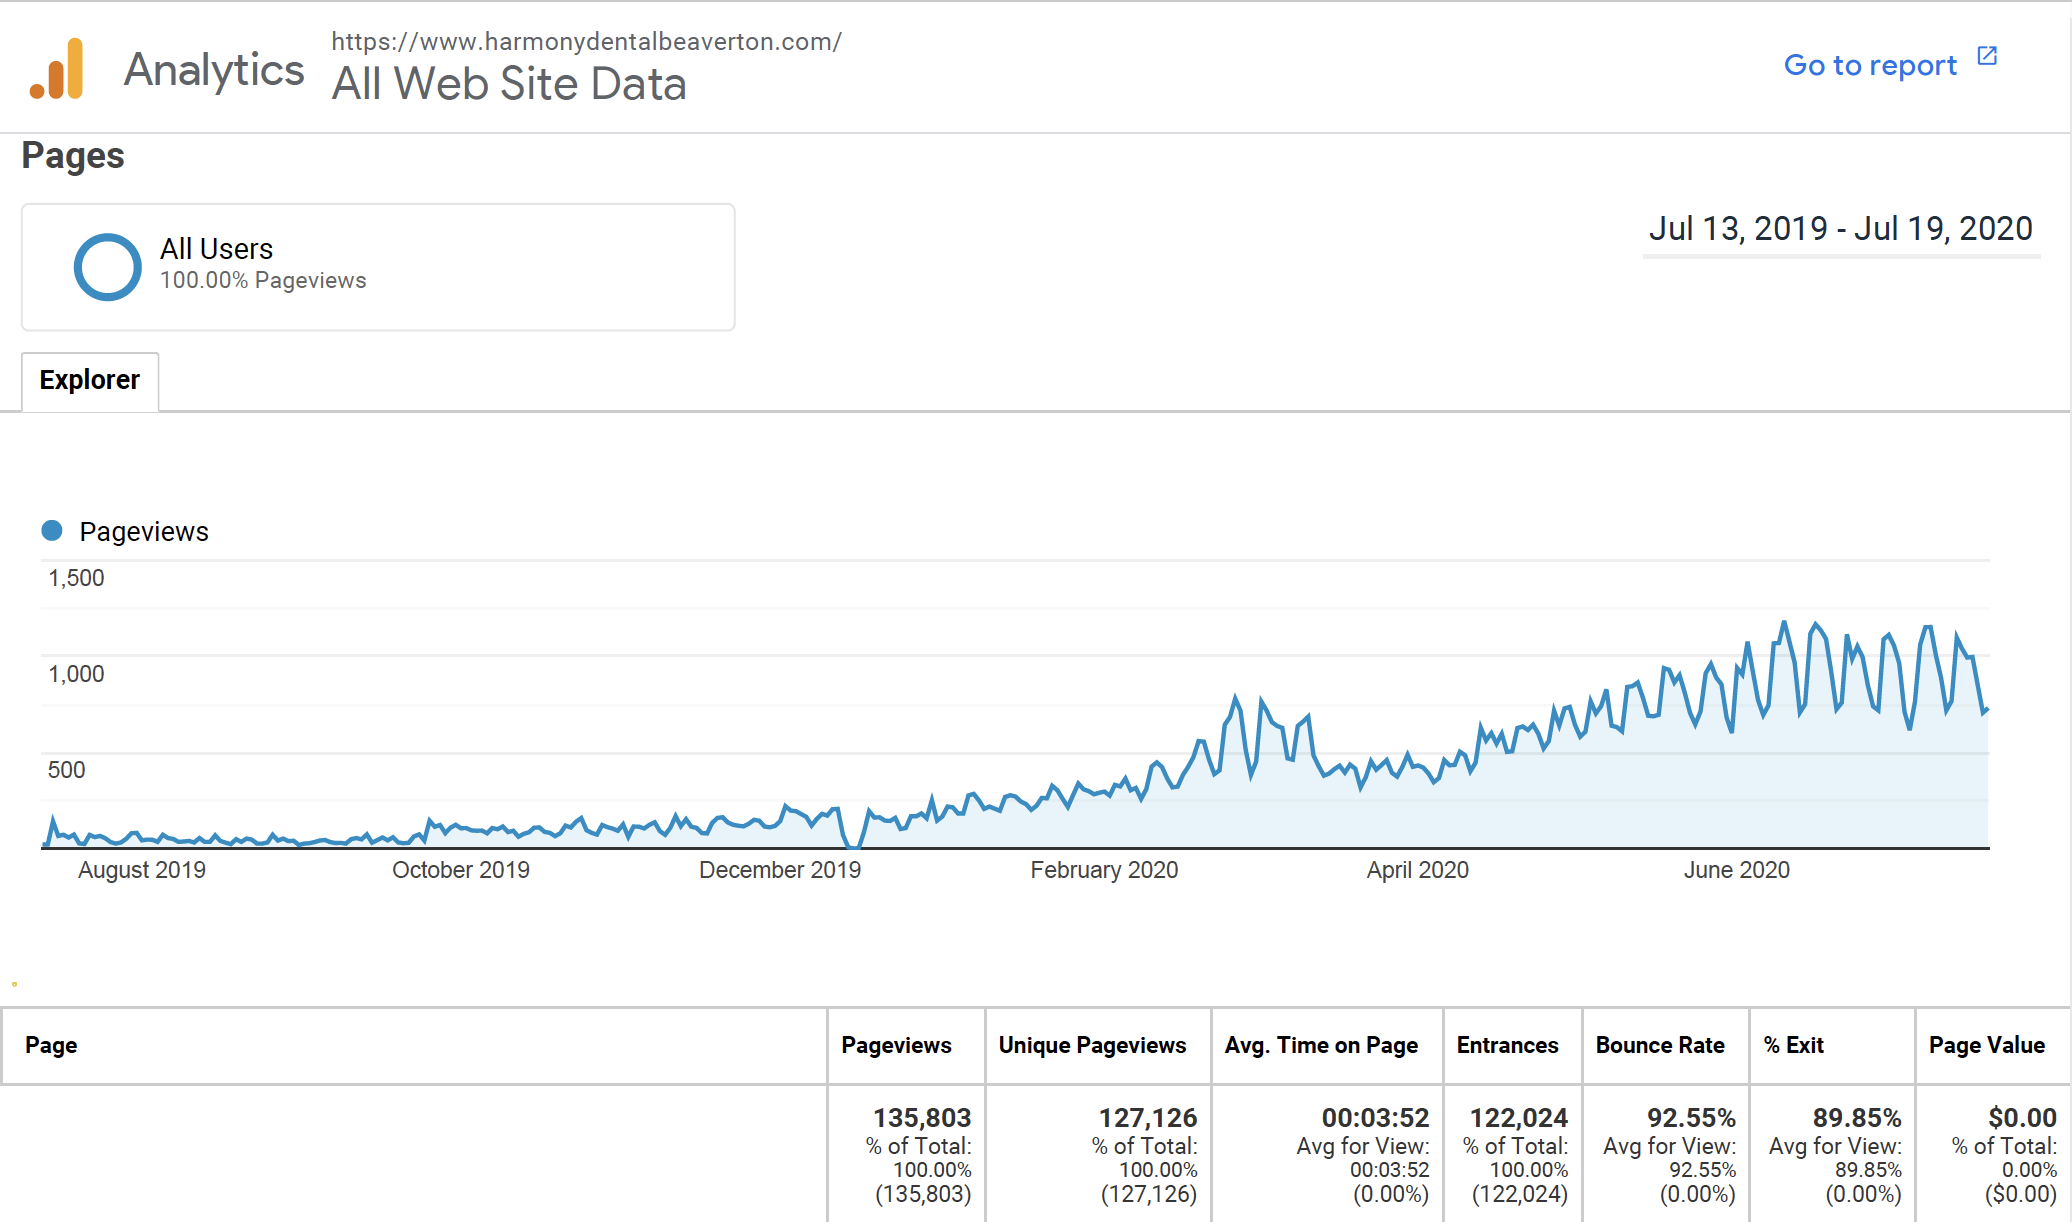 Analytics showing SEO growth for the last year